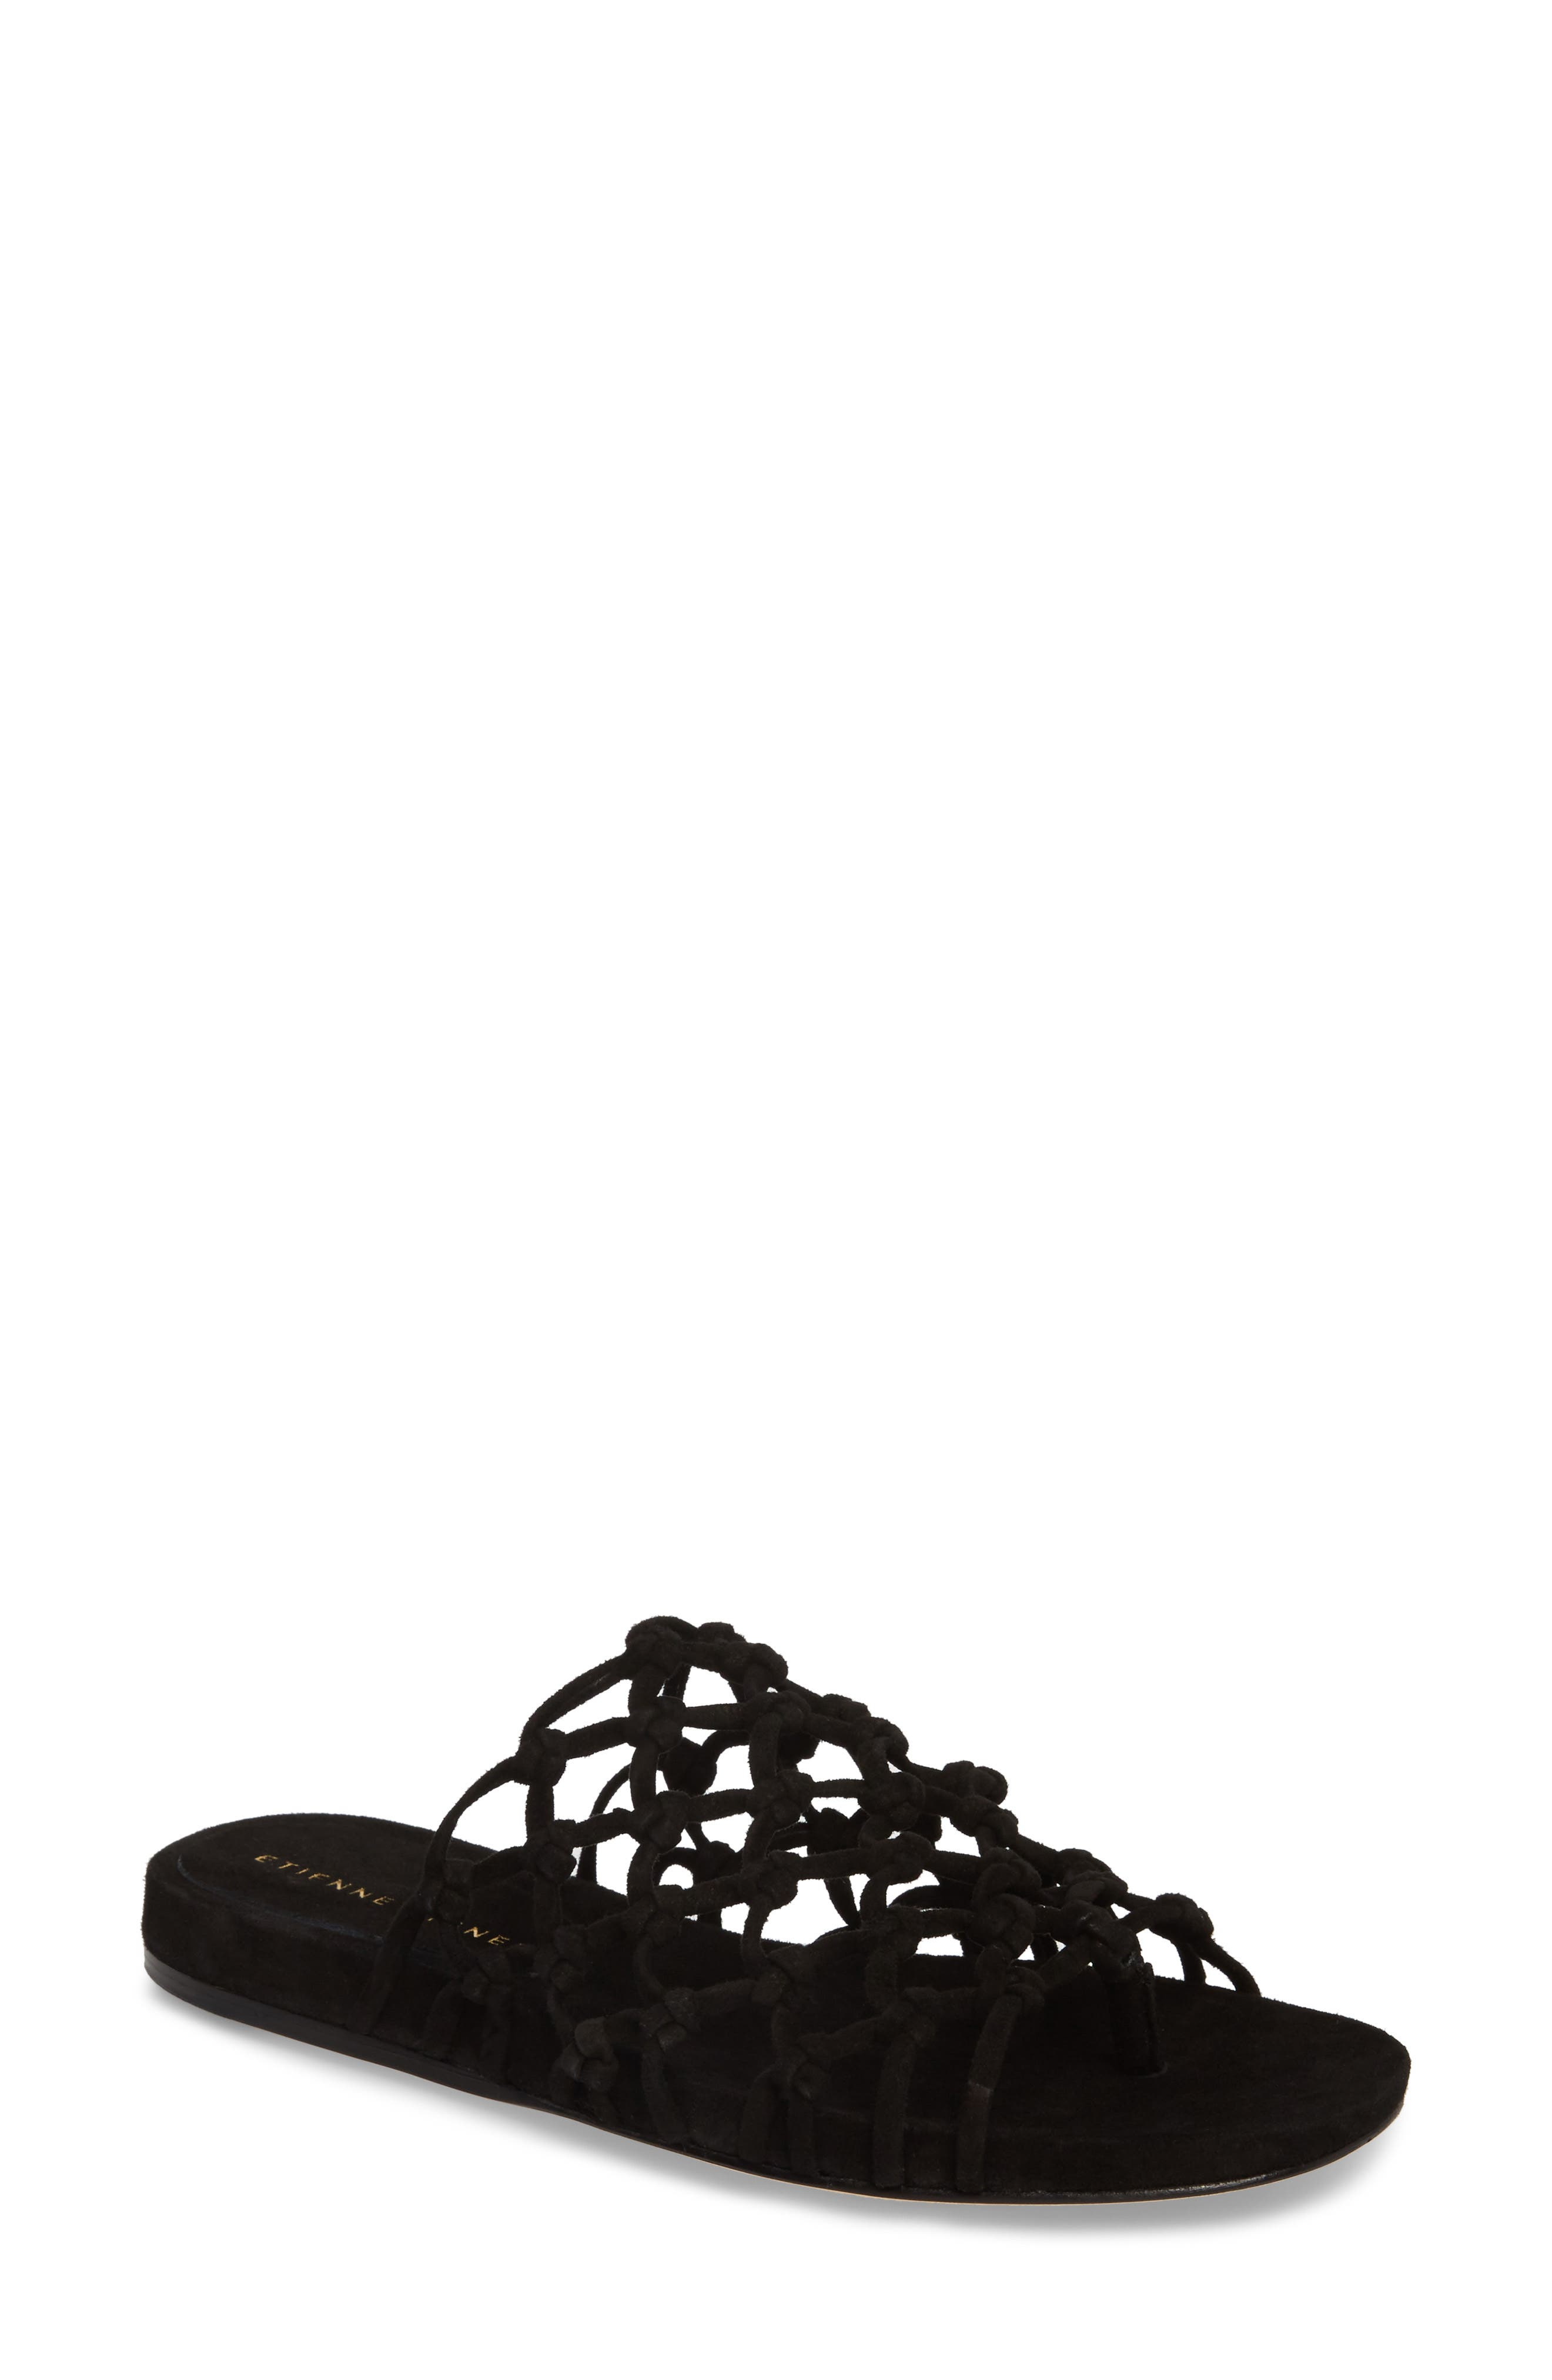 Aruba Slide Sandal,                         Main,                         color, BLACK SUEDE